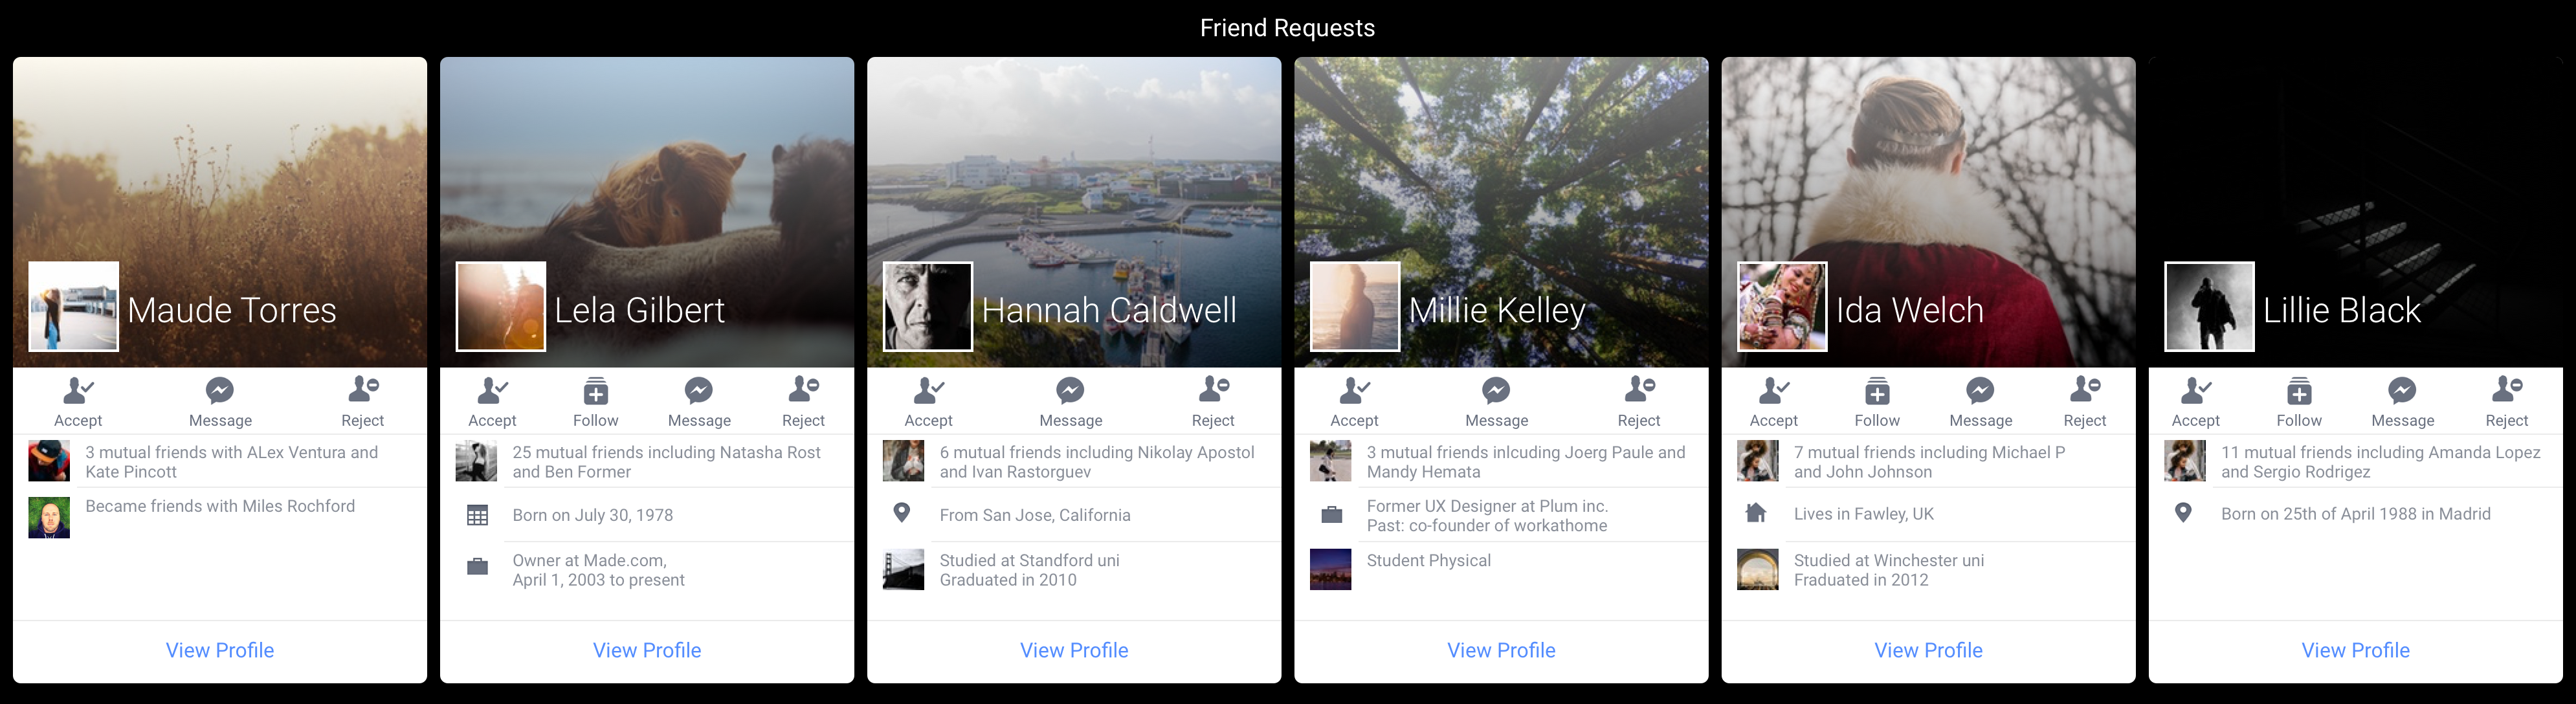 Improving Facebook Friend Requests screen with some FramerJS